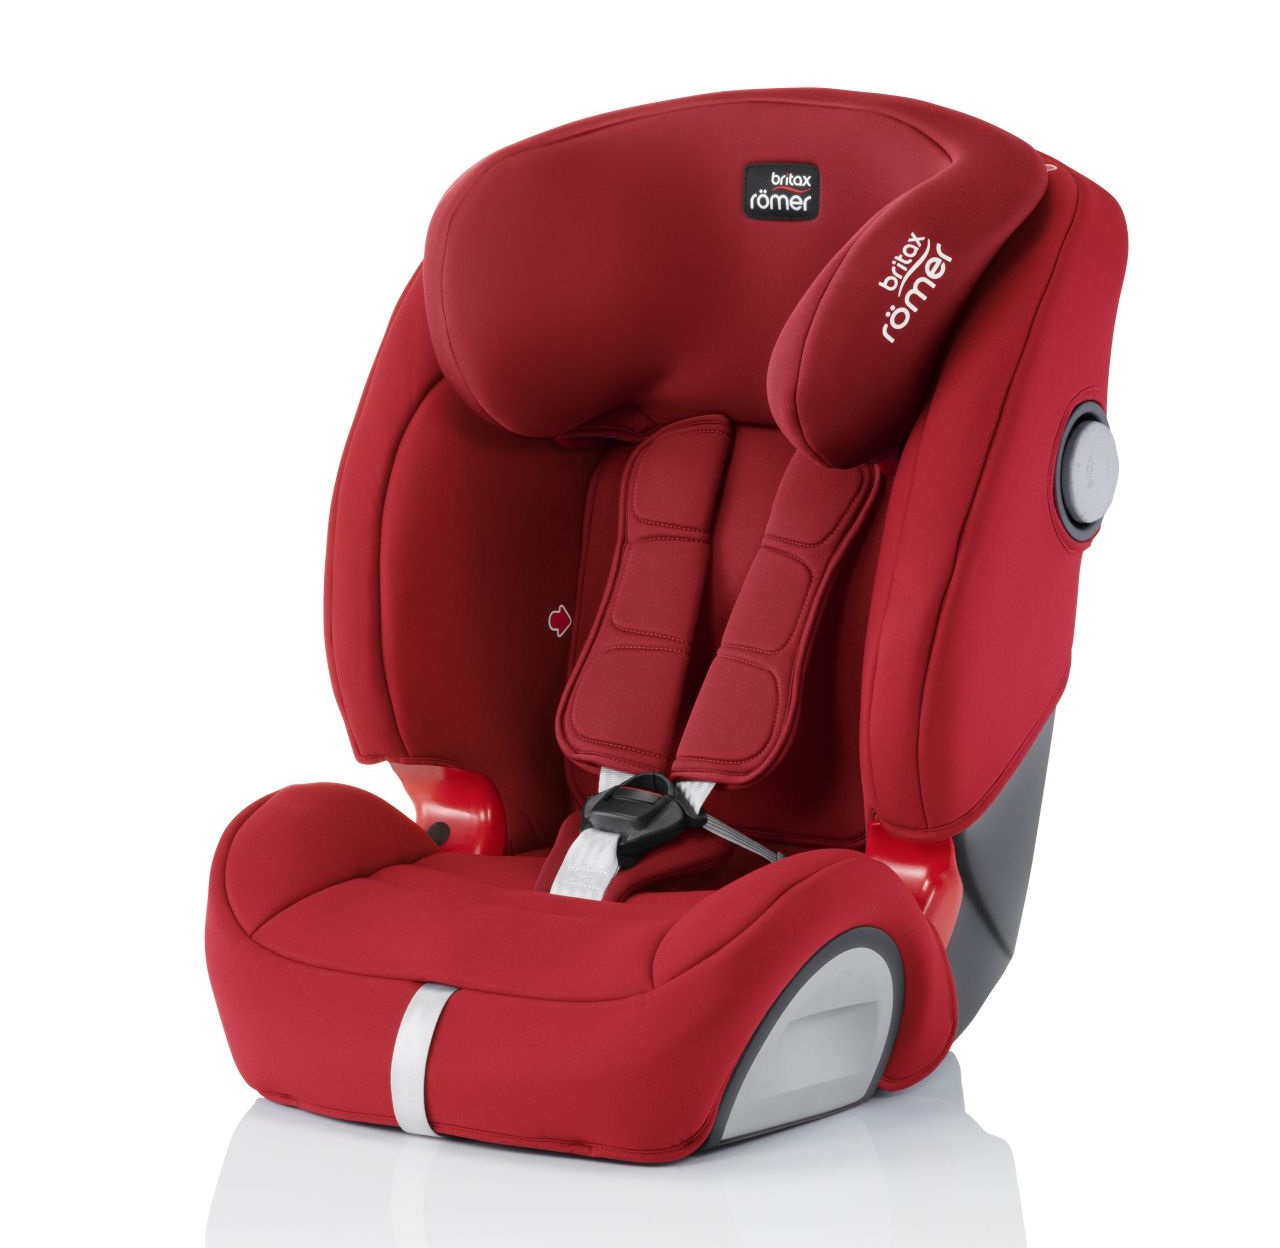 britax r mer car seat evolva 1 2 3 sl sict isofix 2017 flame red buy at kidsroom car seats. Black Bedroom Furniture Sets. Home Design Ideas